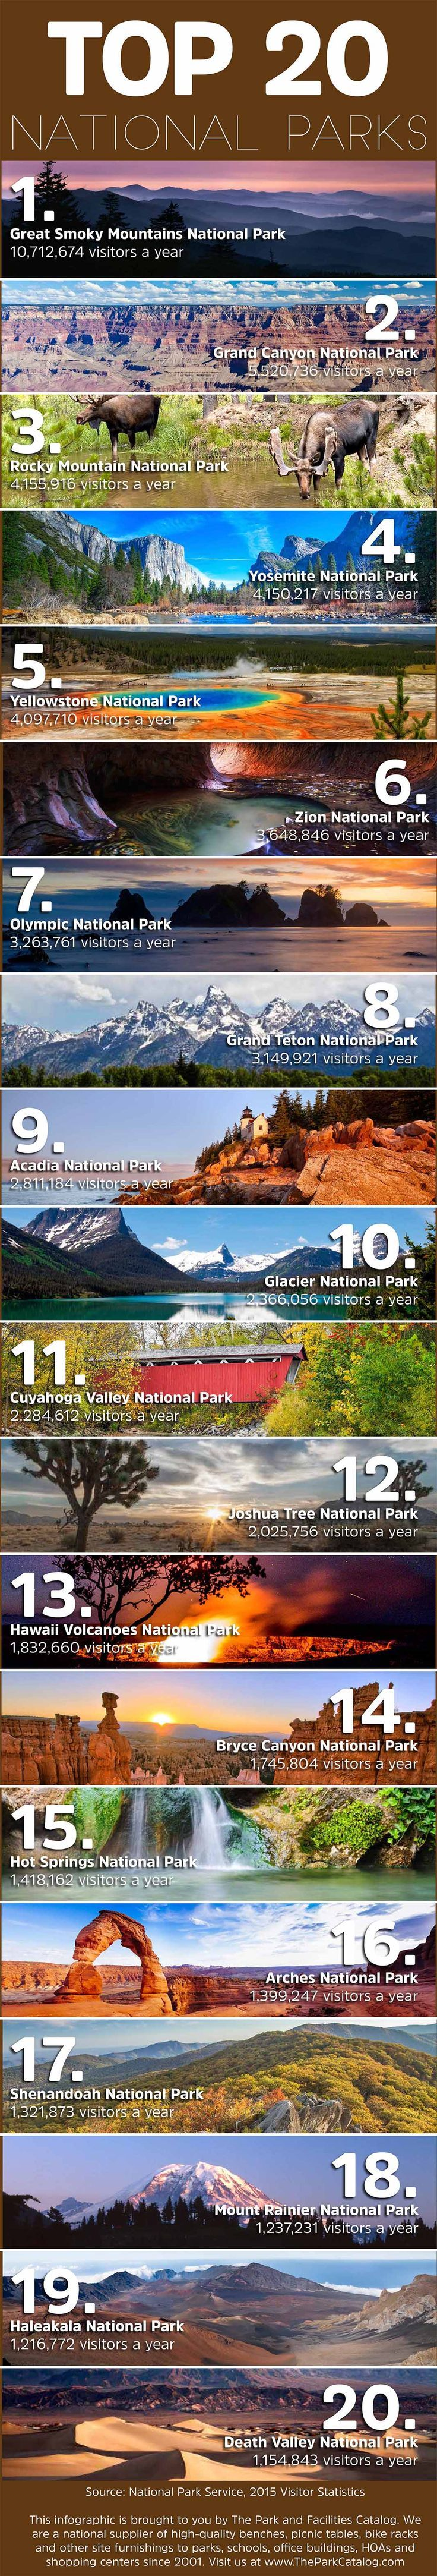 20 of the top National Parks to visit